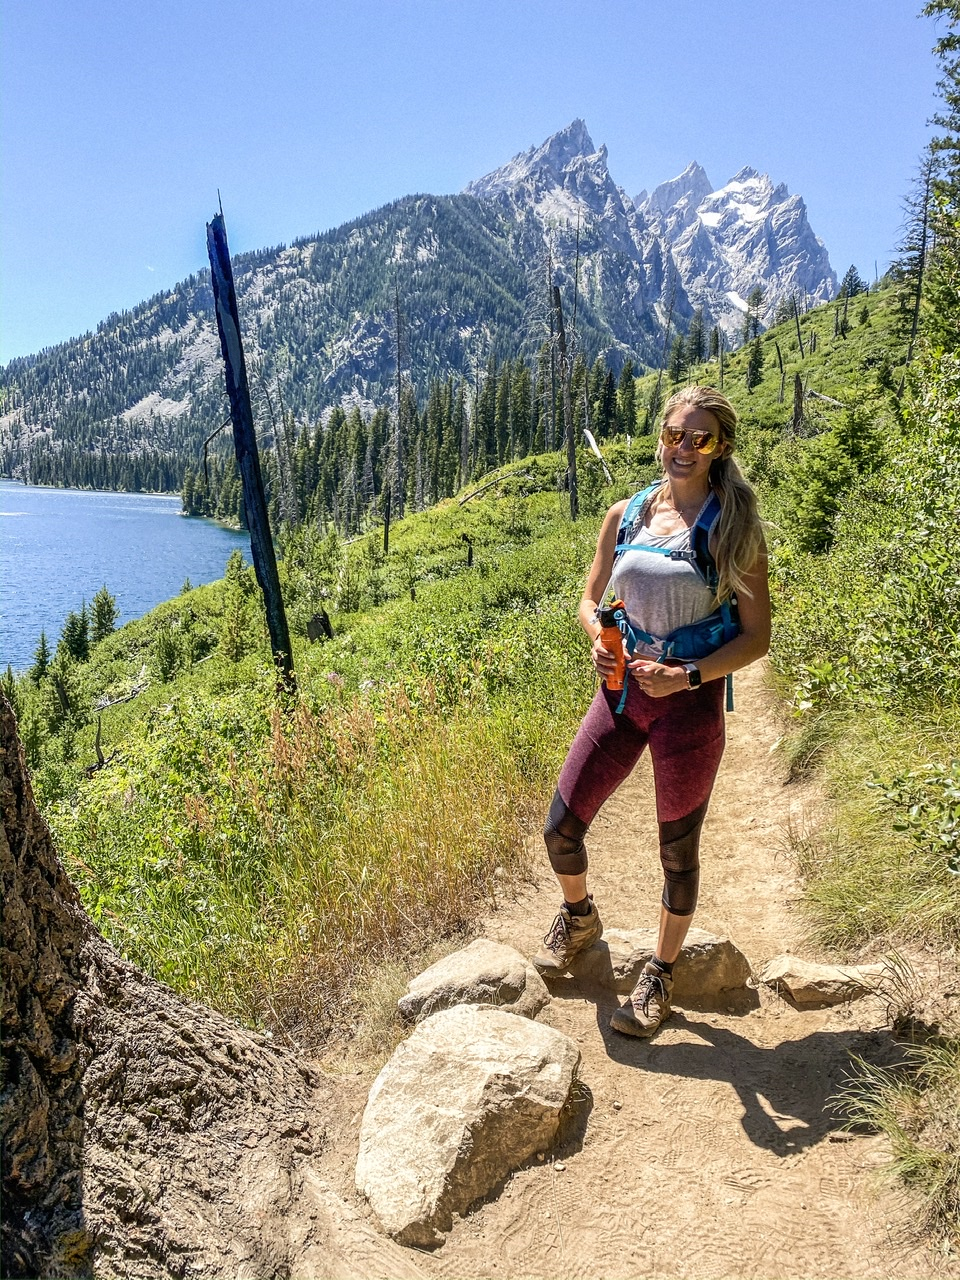 Hiking the 7.5 mile loop at Jenny Lake in the Tetons about 30 - 40  minutes outside of Jackson Hole Wyoming